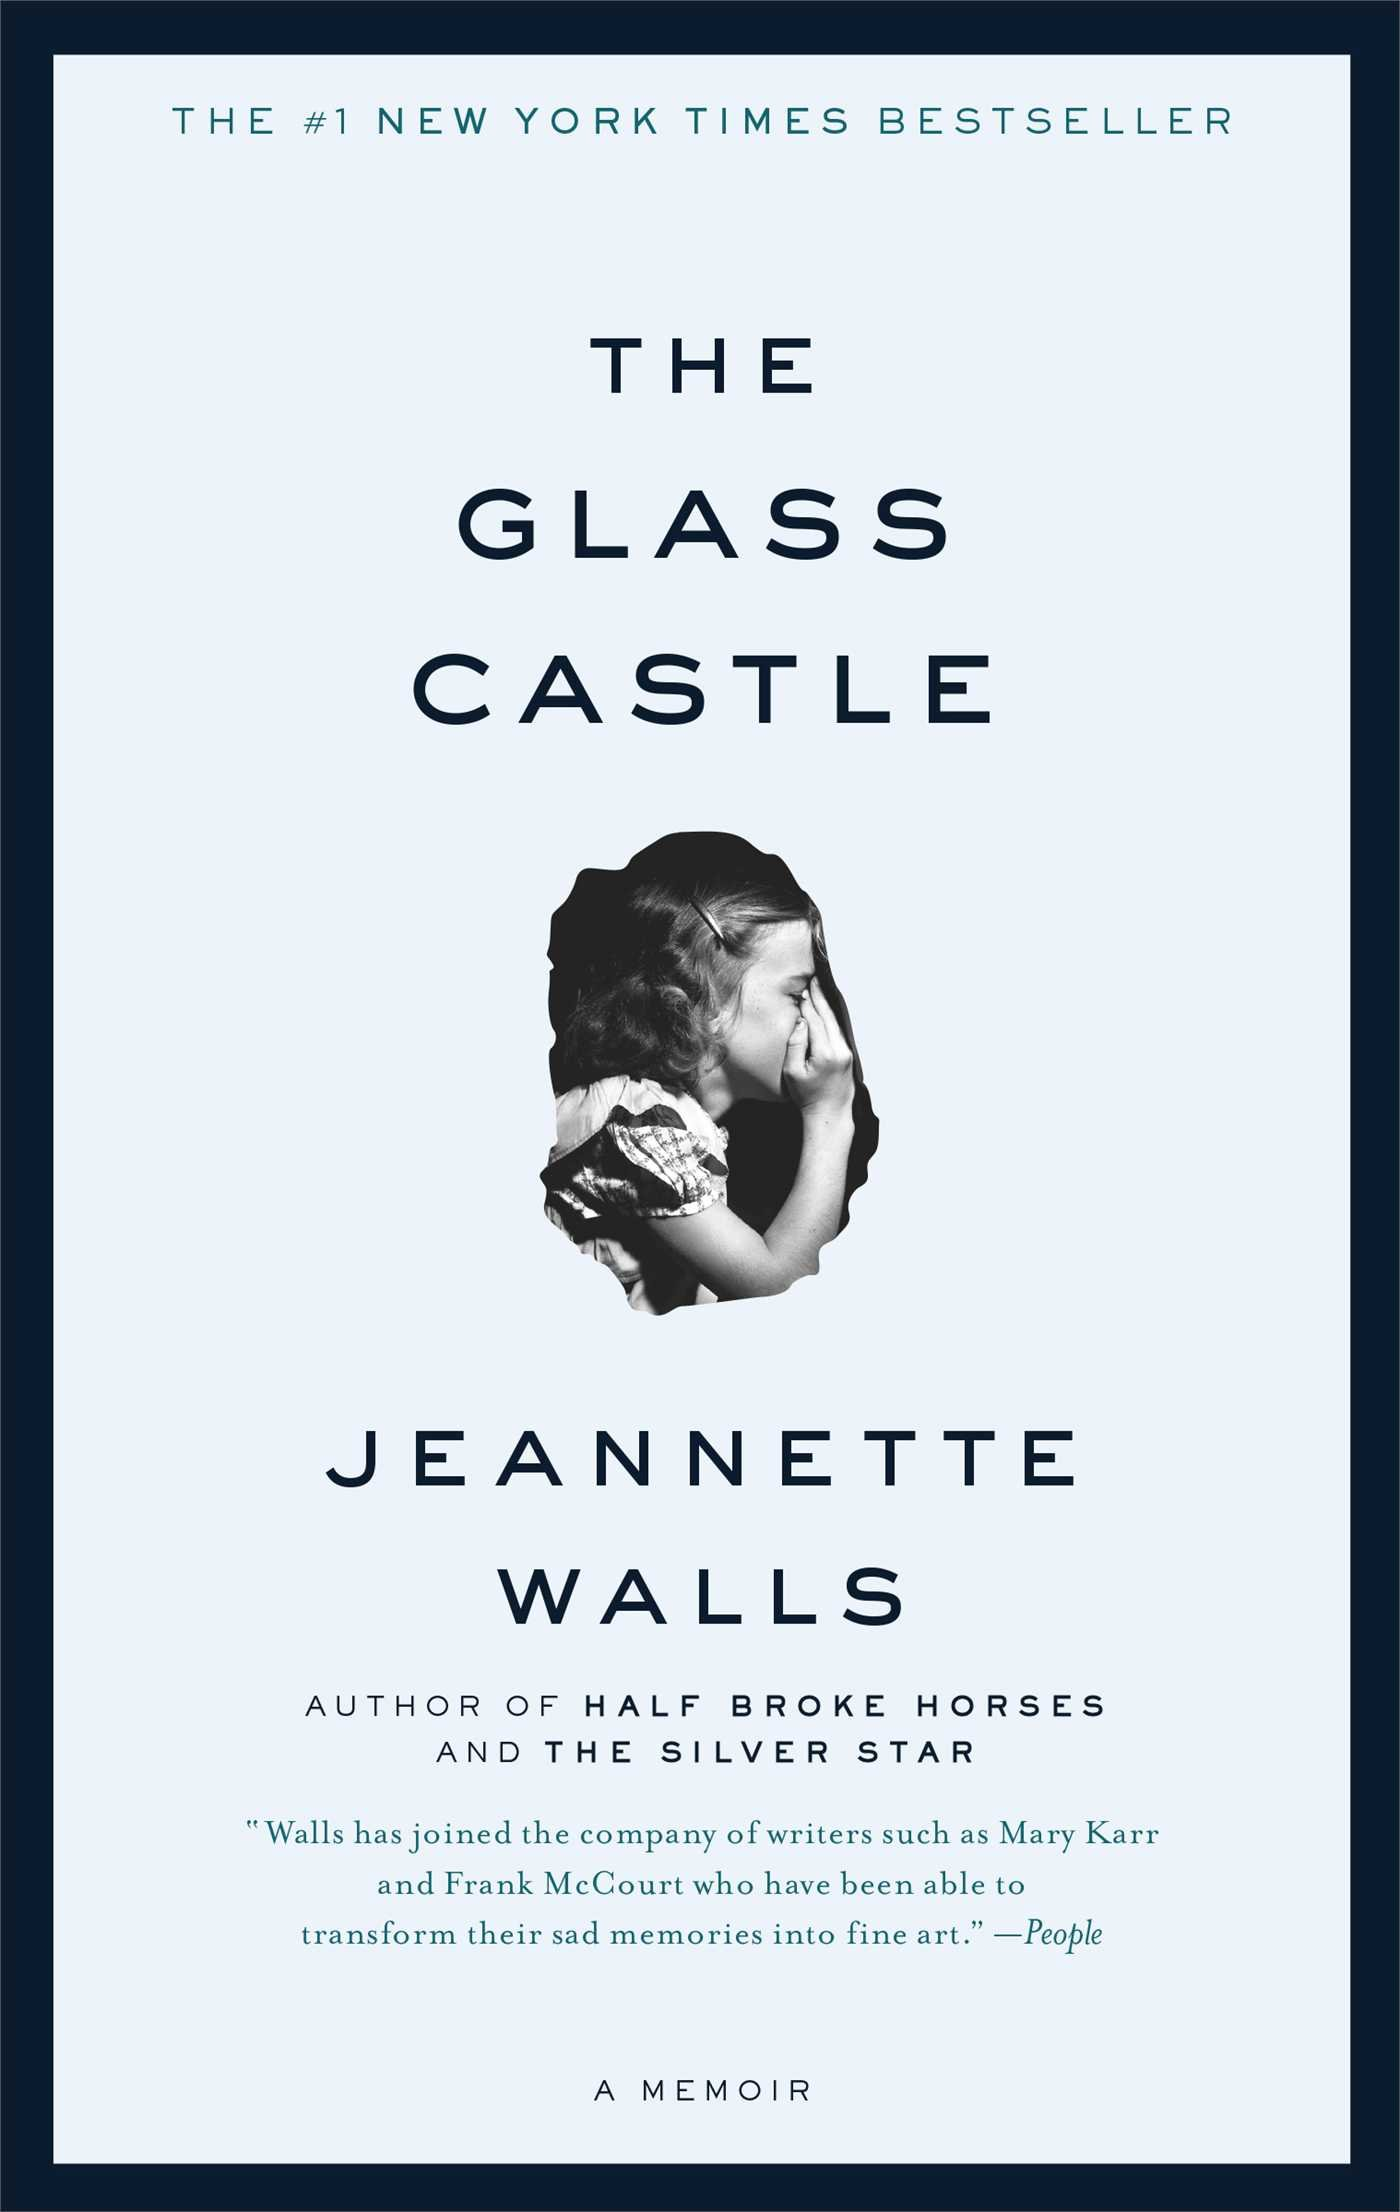 wisconsin parent wants the glass castle out of curriculum comic  the glass castle